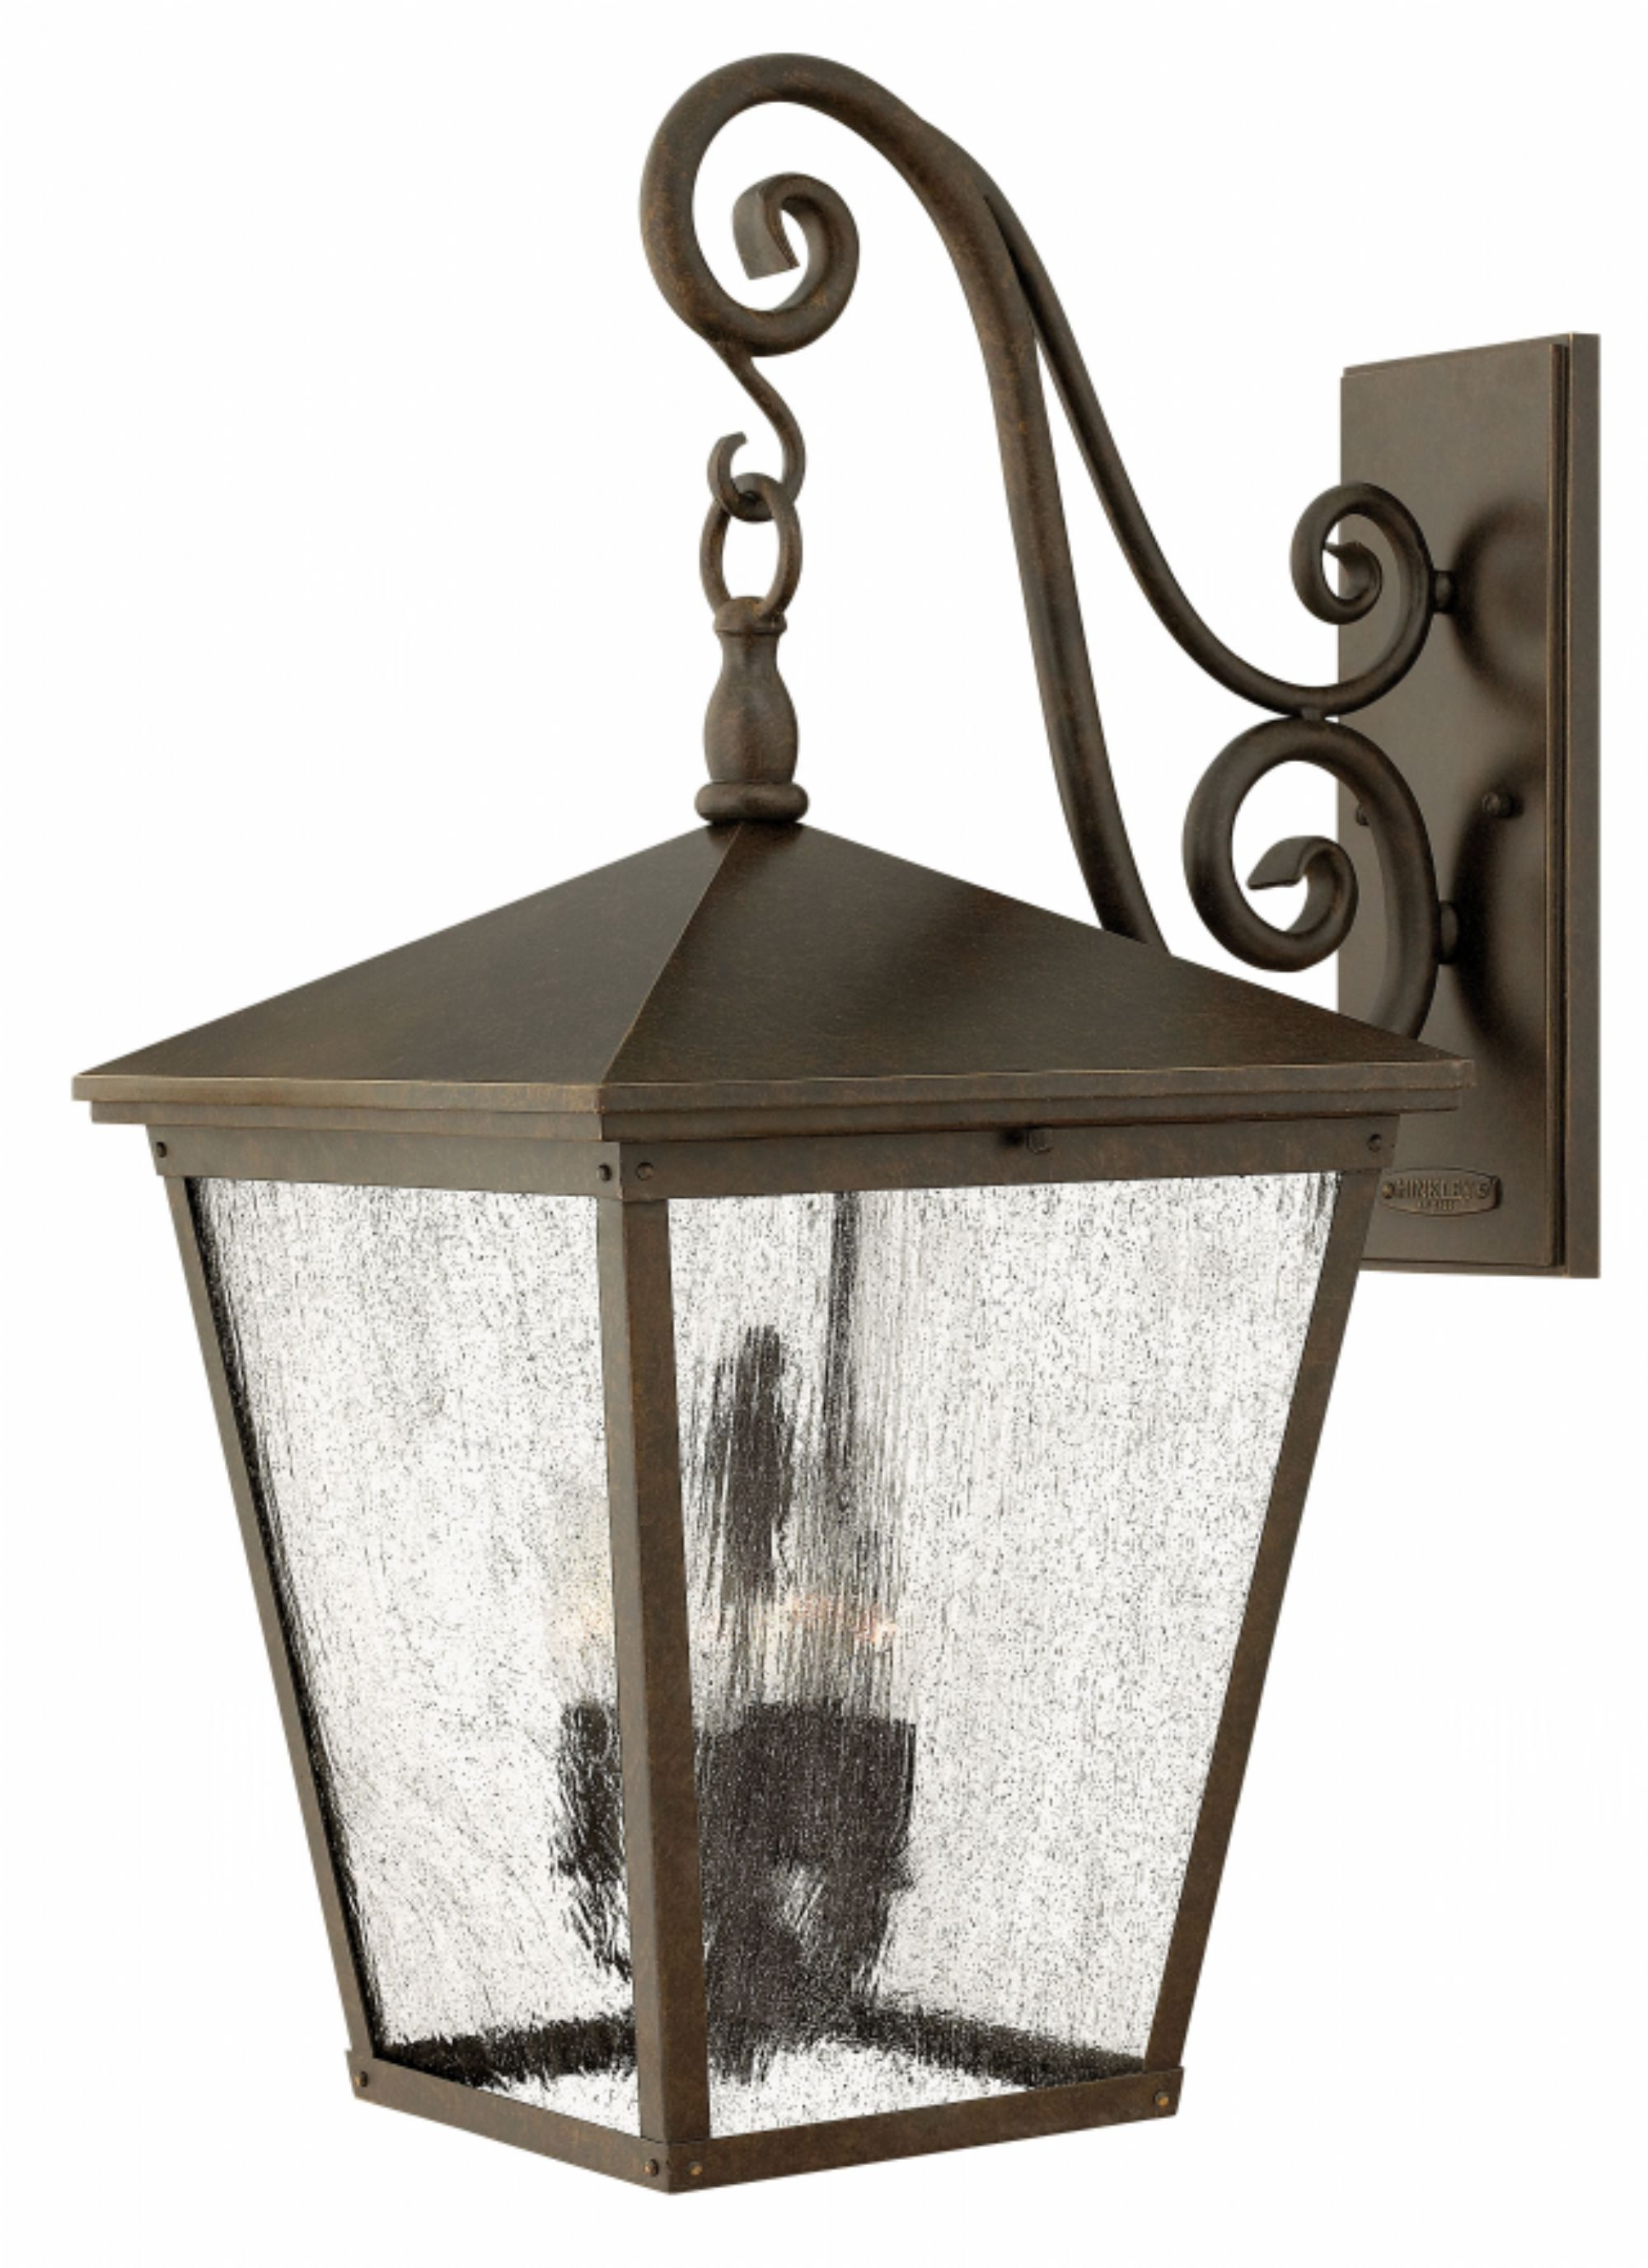 Hinkley lighting trellis 1438rb front door lights pinterest hinkley lighting carries many regency bronze trellis exterior wall mount light fixtures that can be used to enhance the appearance and lighting of any home arubaitofo Gallery